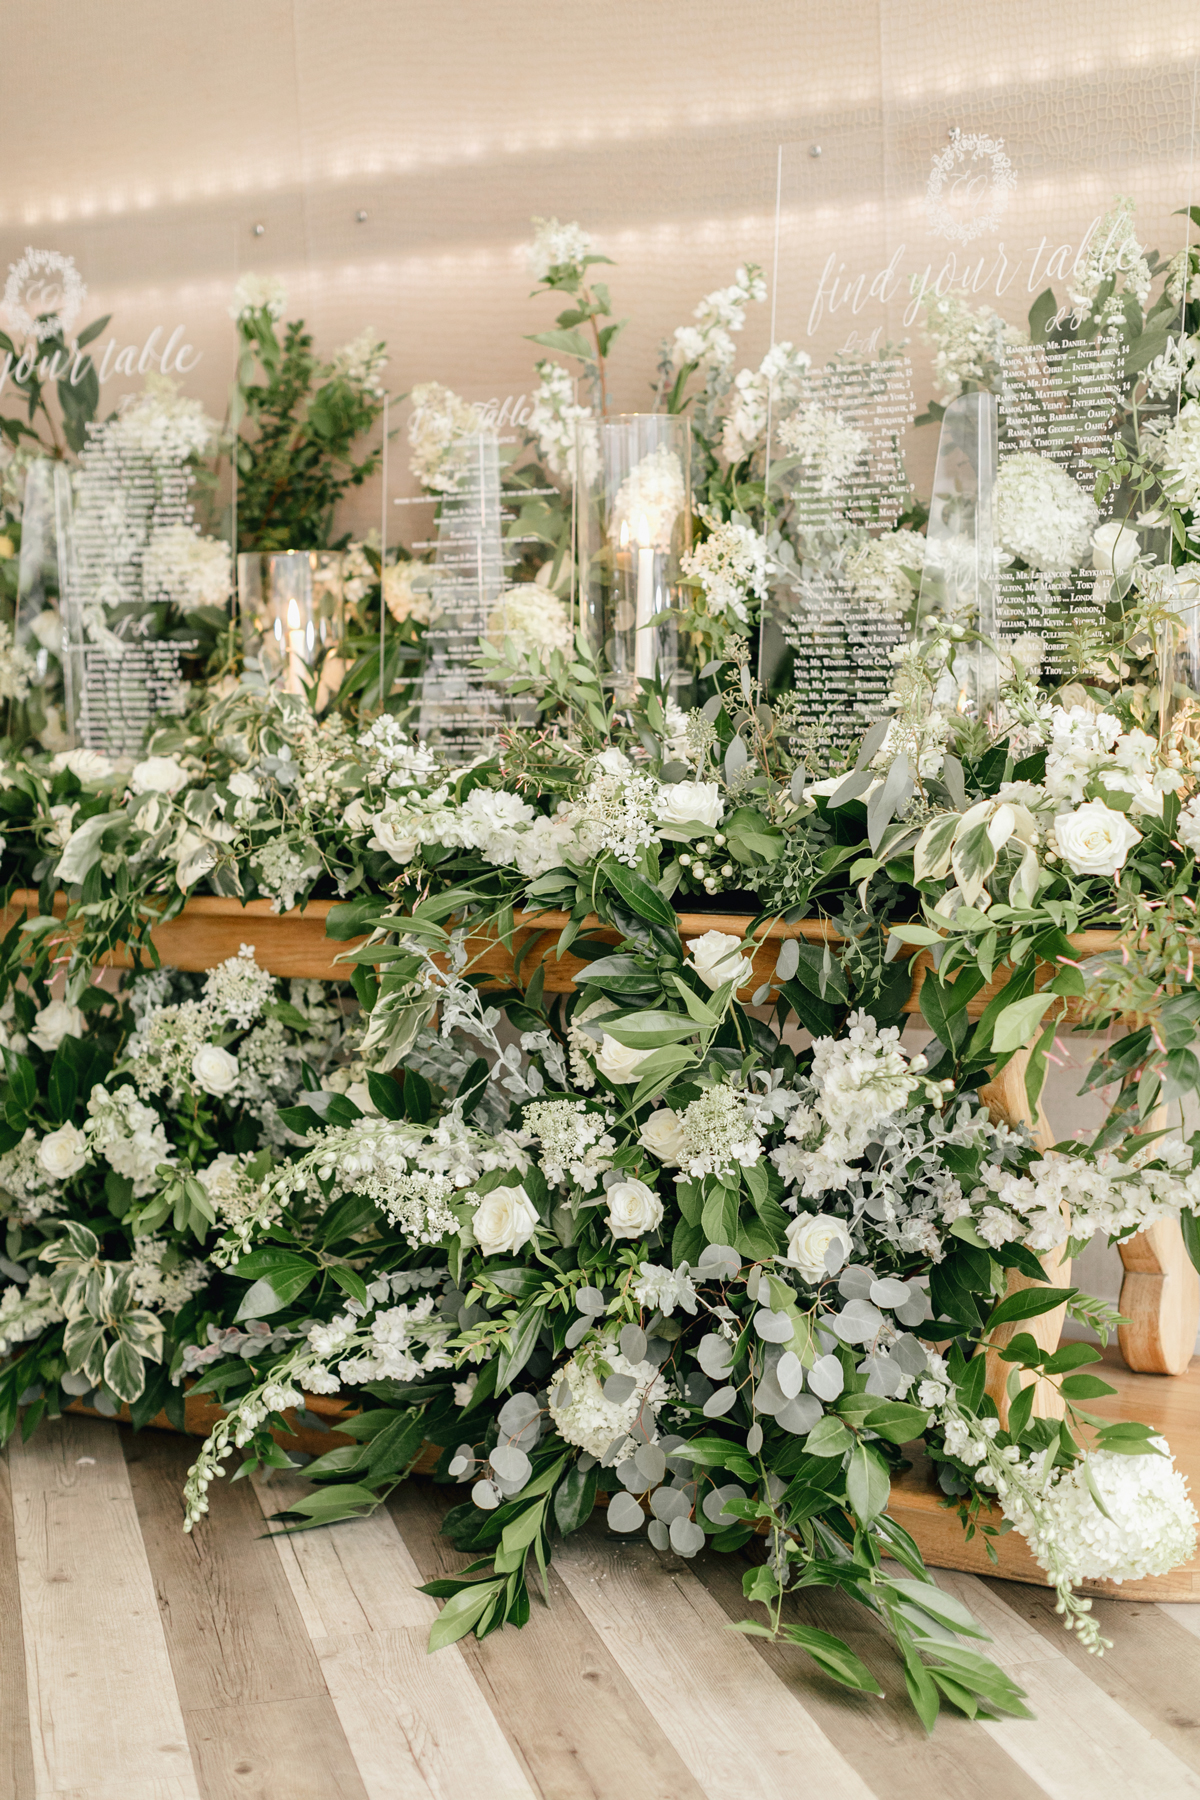 transparent seating chart surrounded by white flowers and greenery